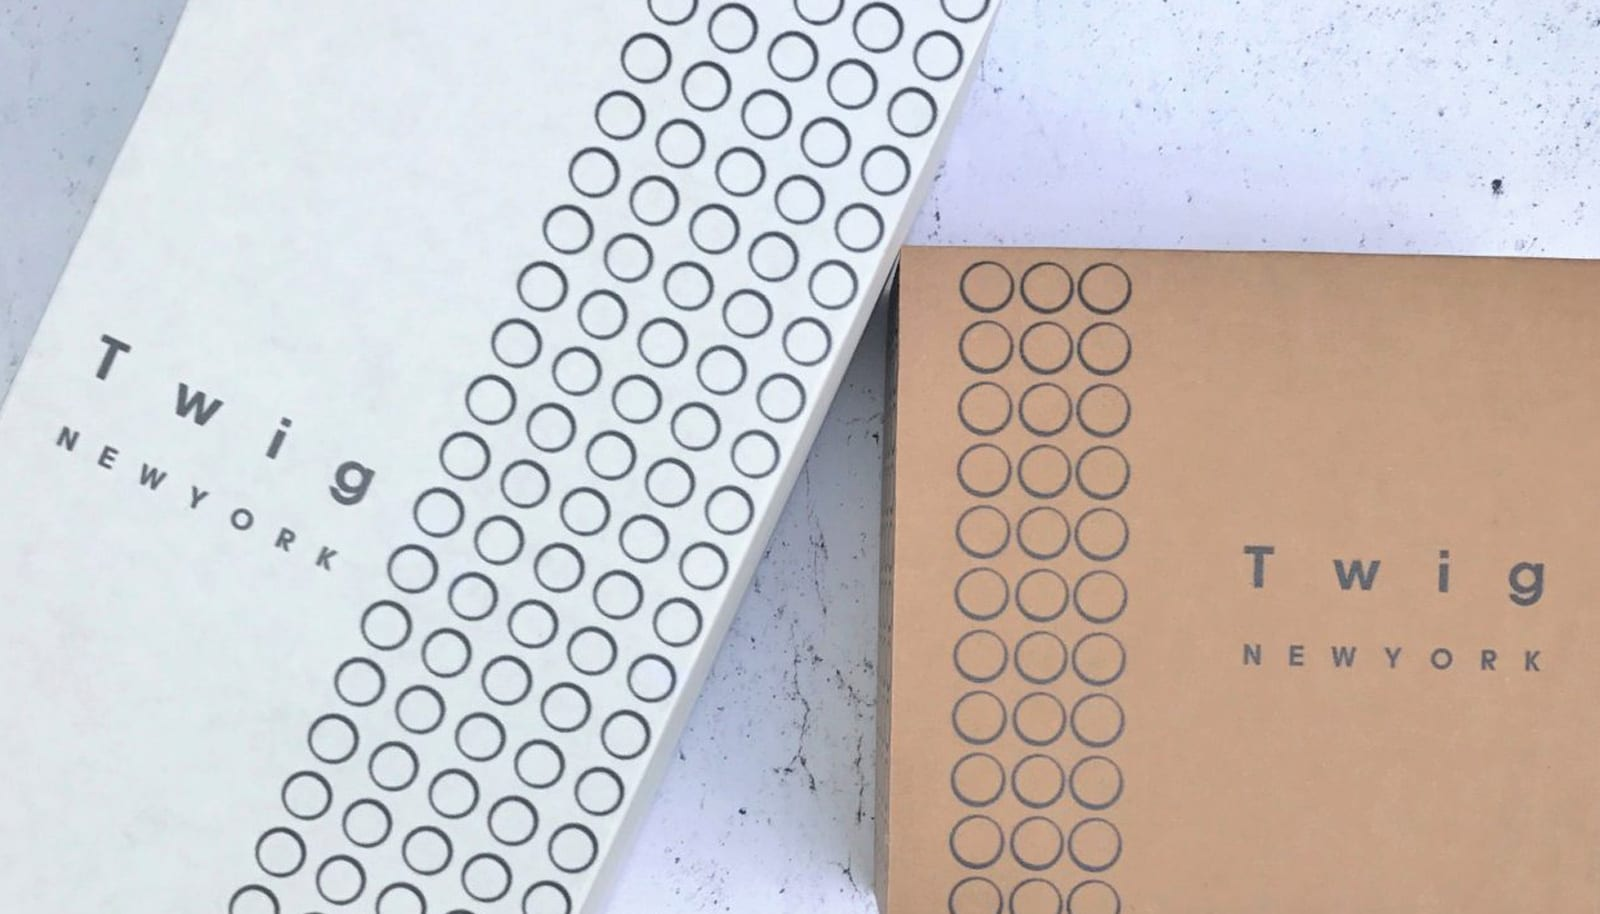 close up shot of Twig New York packaging